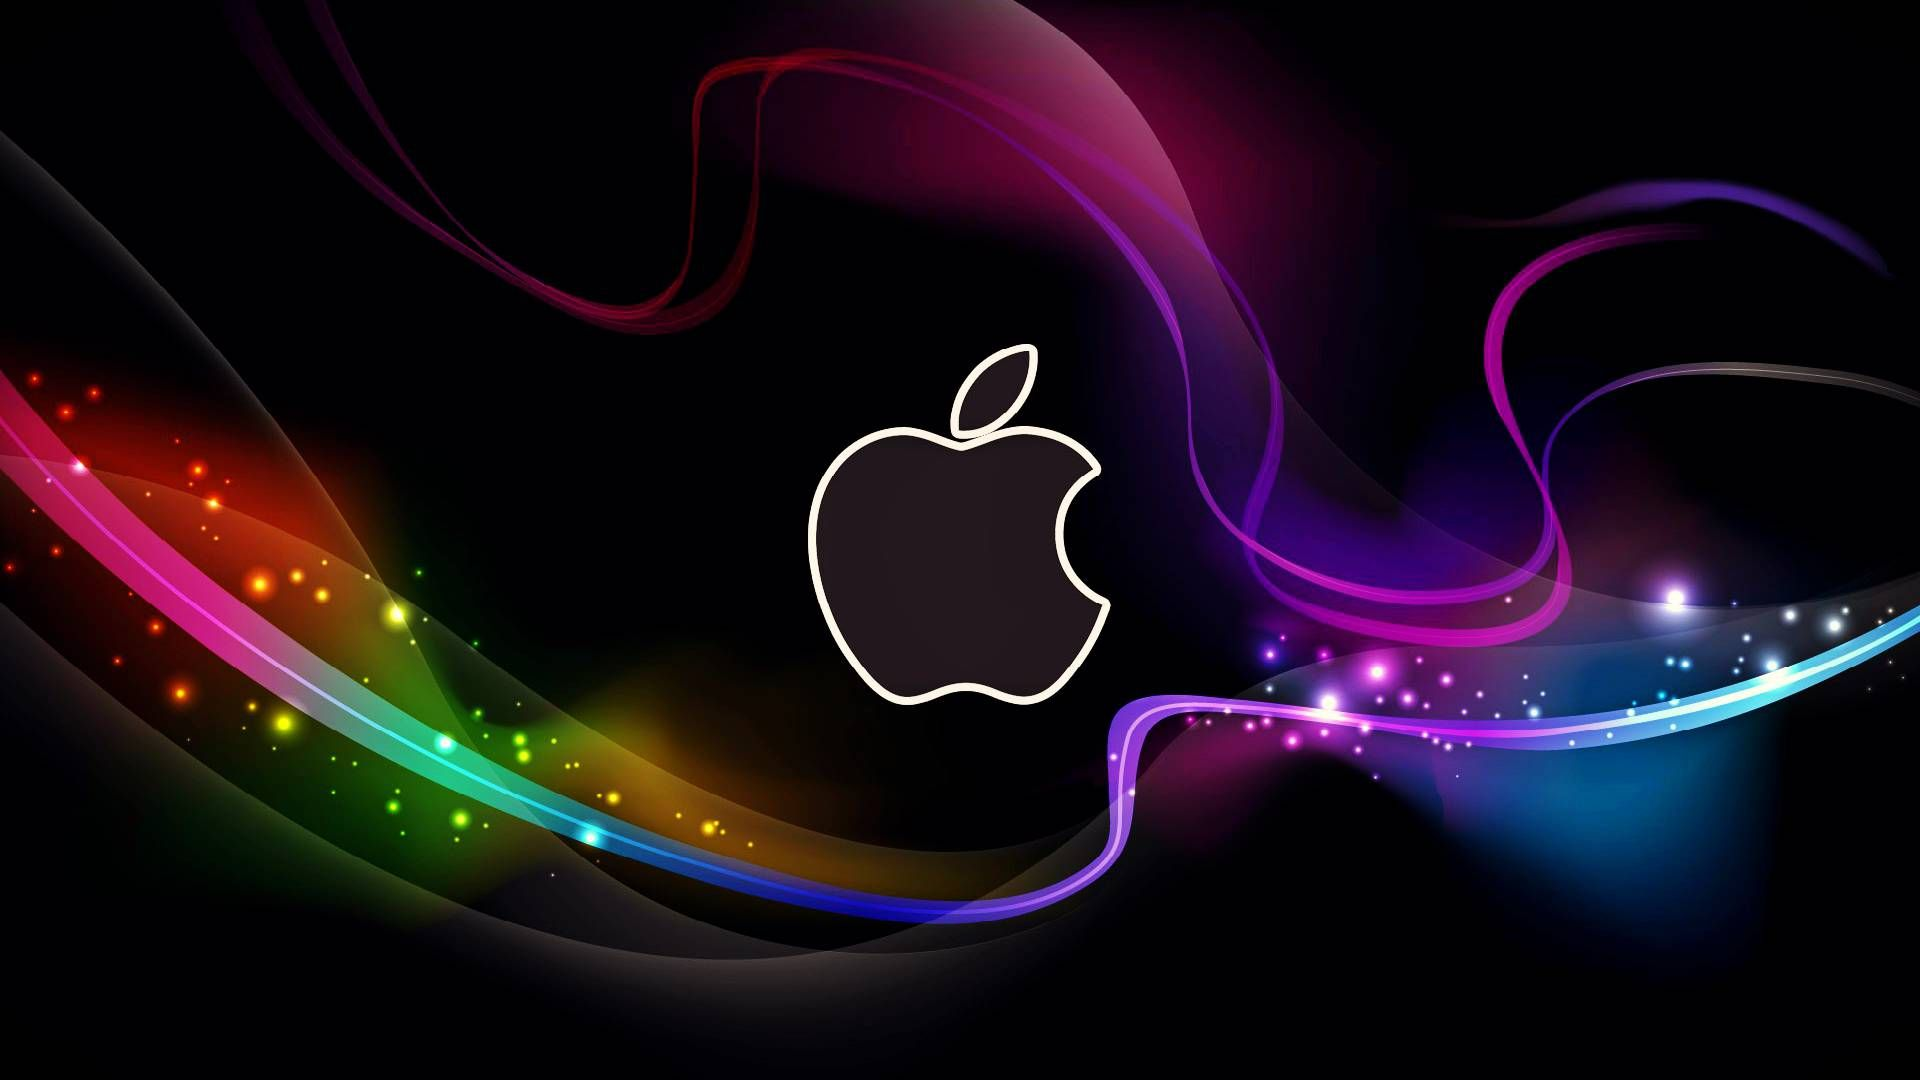 coolapplebackgrounds Iphone wallpaper Apple logo wallpaper 1920x1080